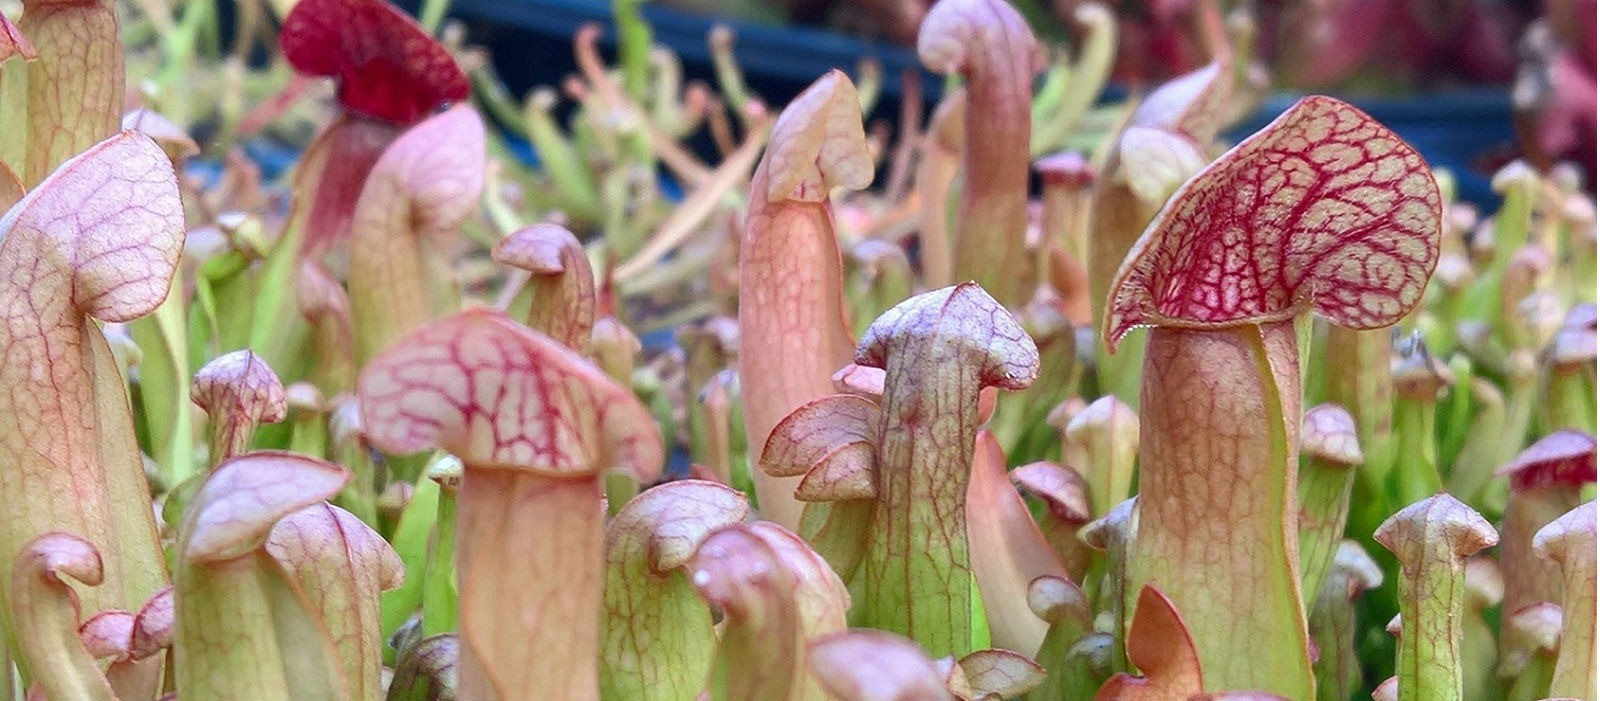 Sarracenia - North American Pitcher-Plants